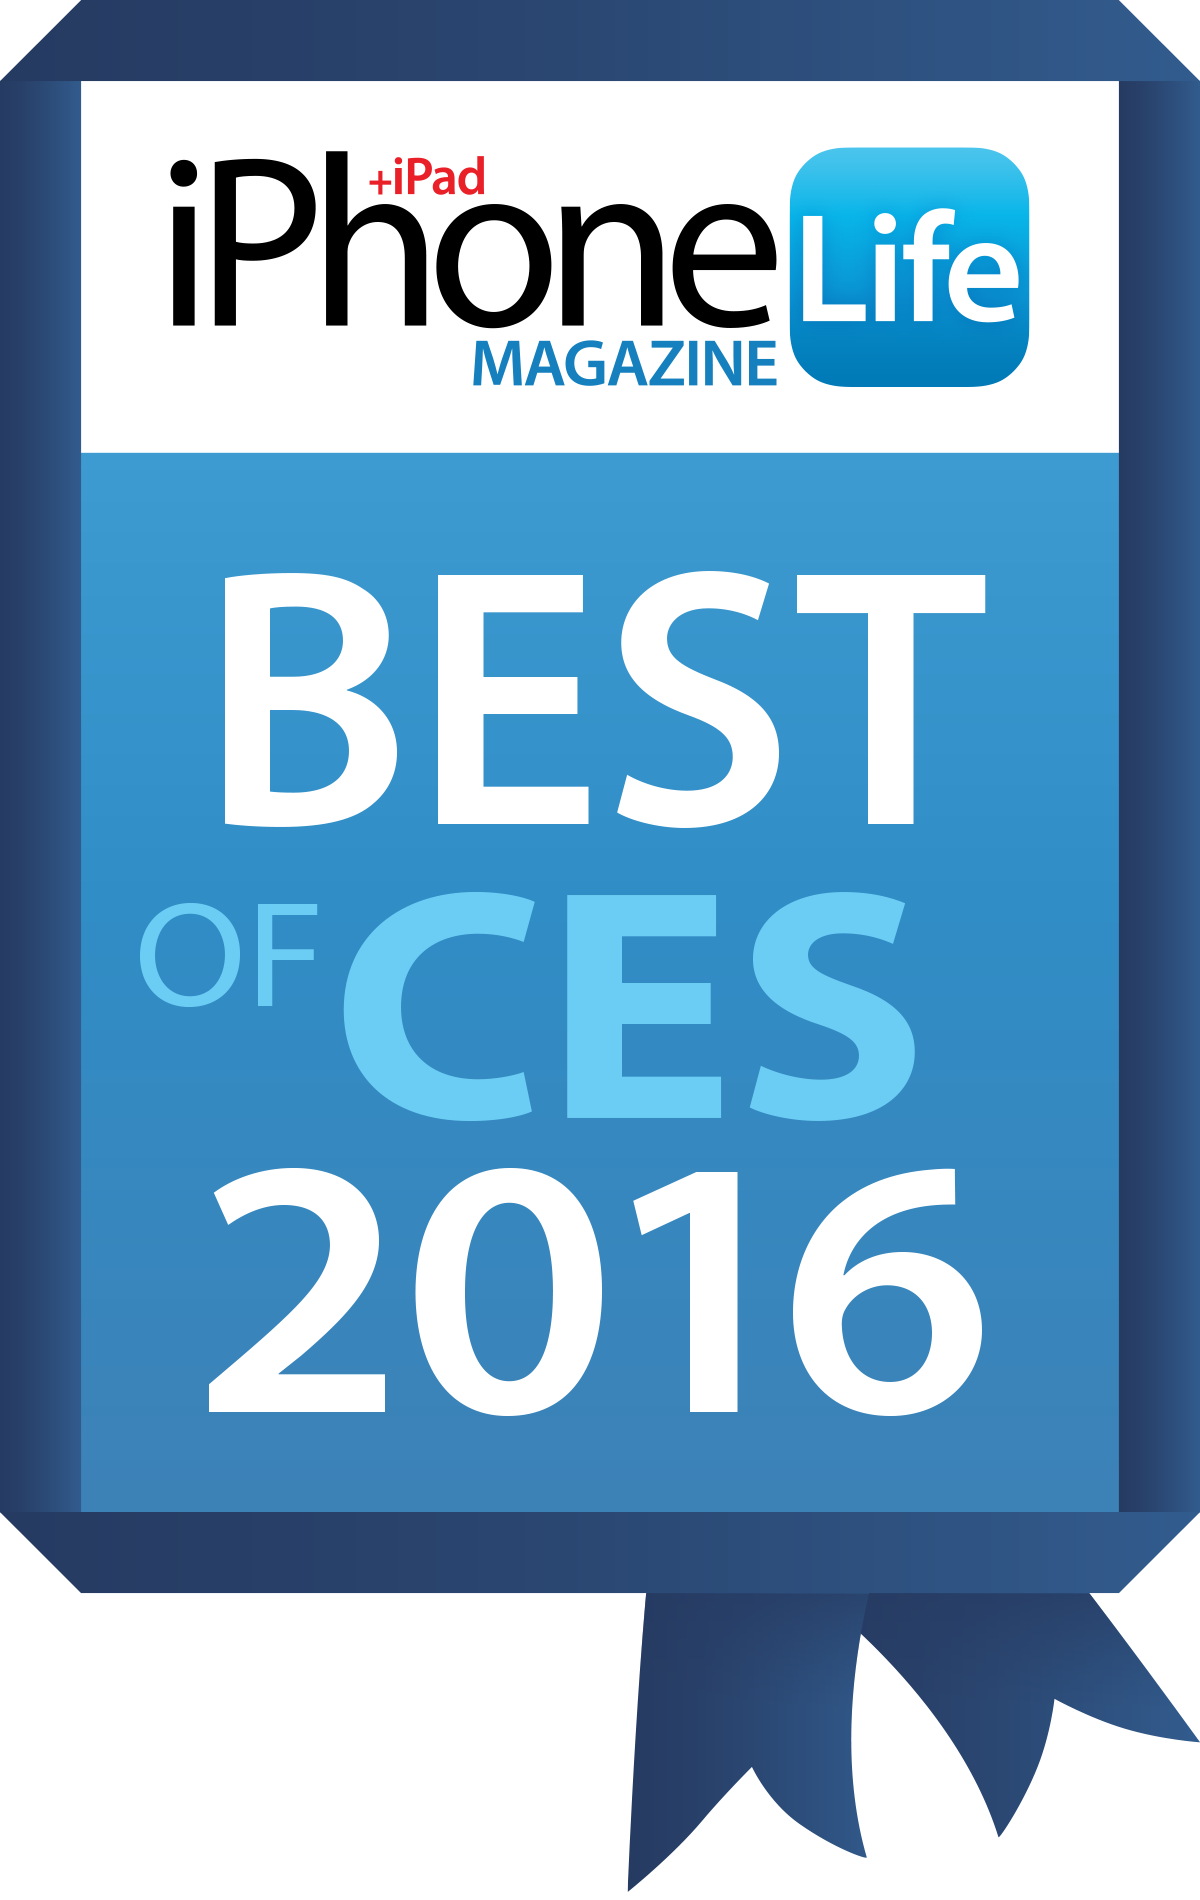 iPhone Life magazine Best of CES Award